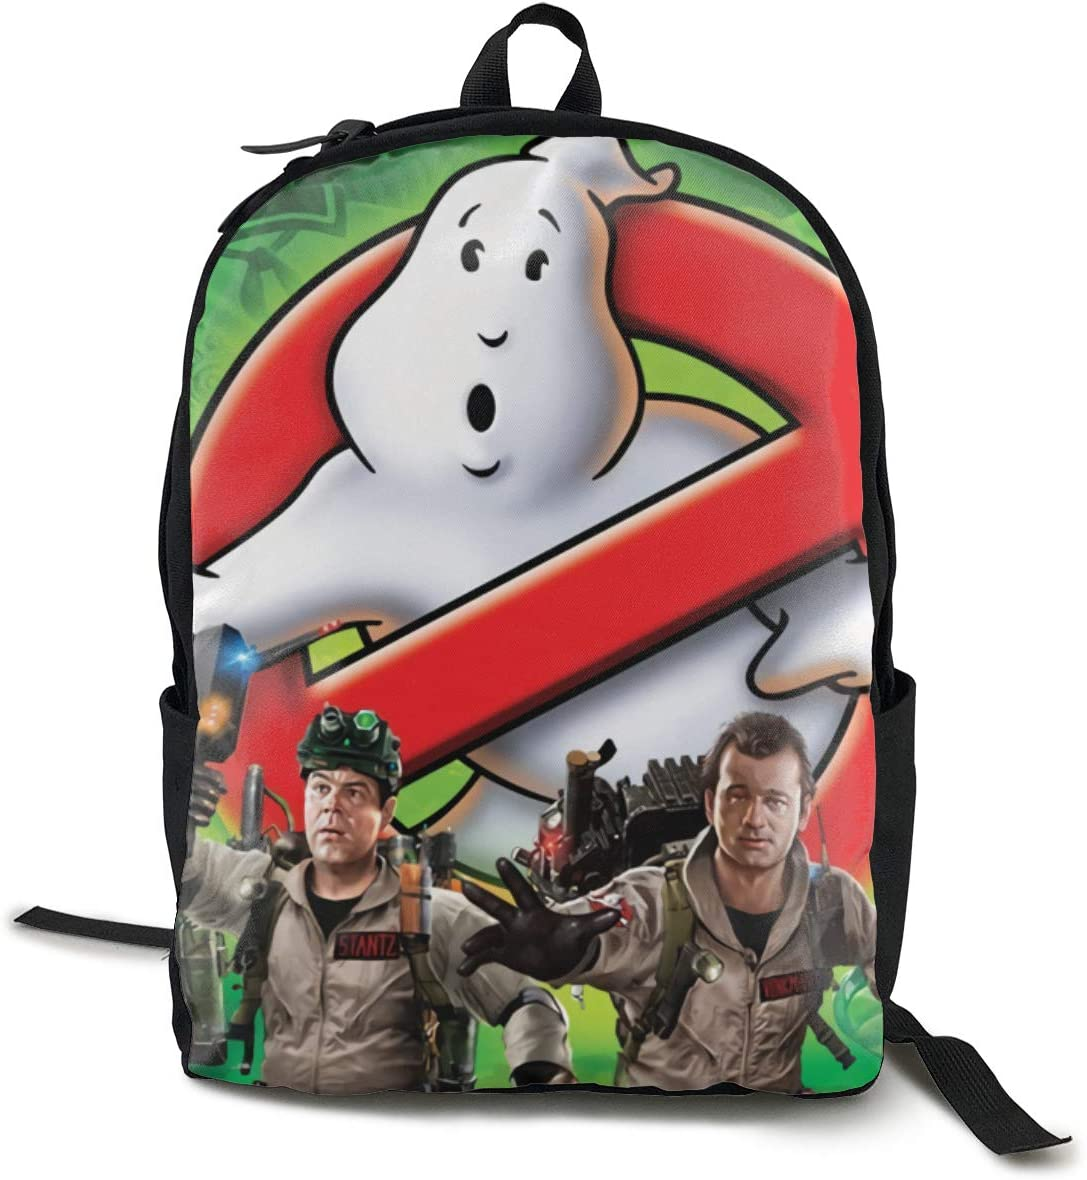 WangSiwe Quality inspection Ghostbusters School Backpack College Laptop Backpacks NEW